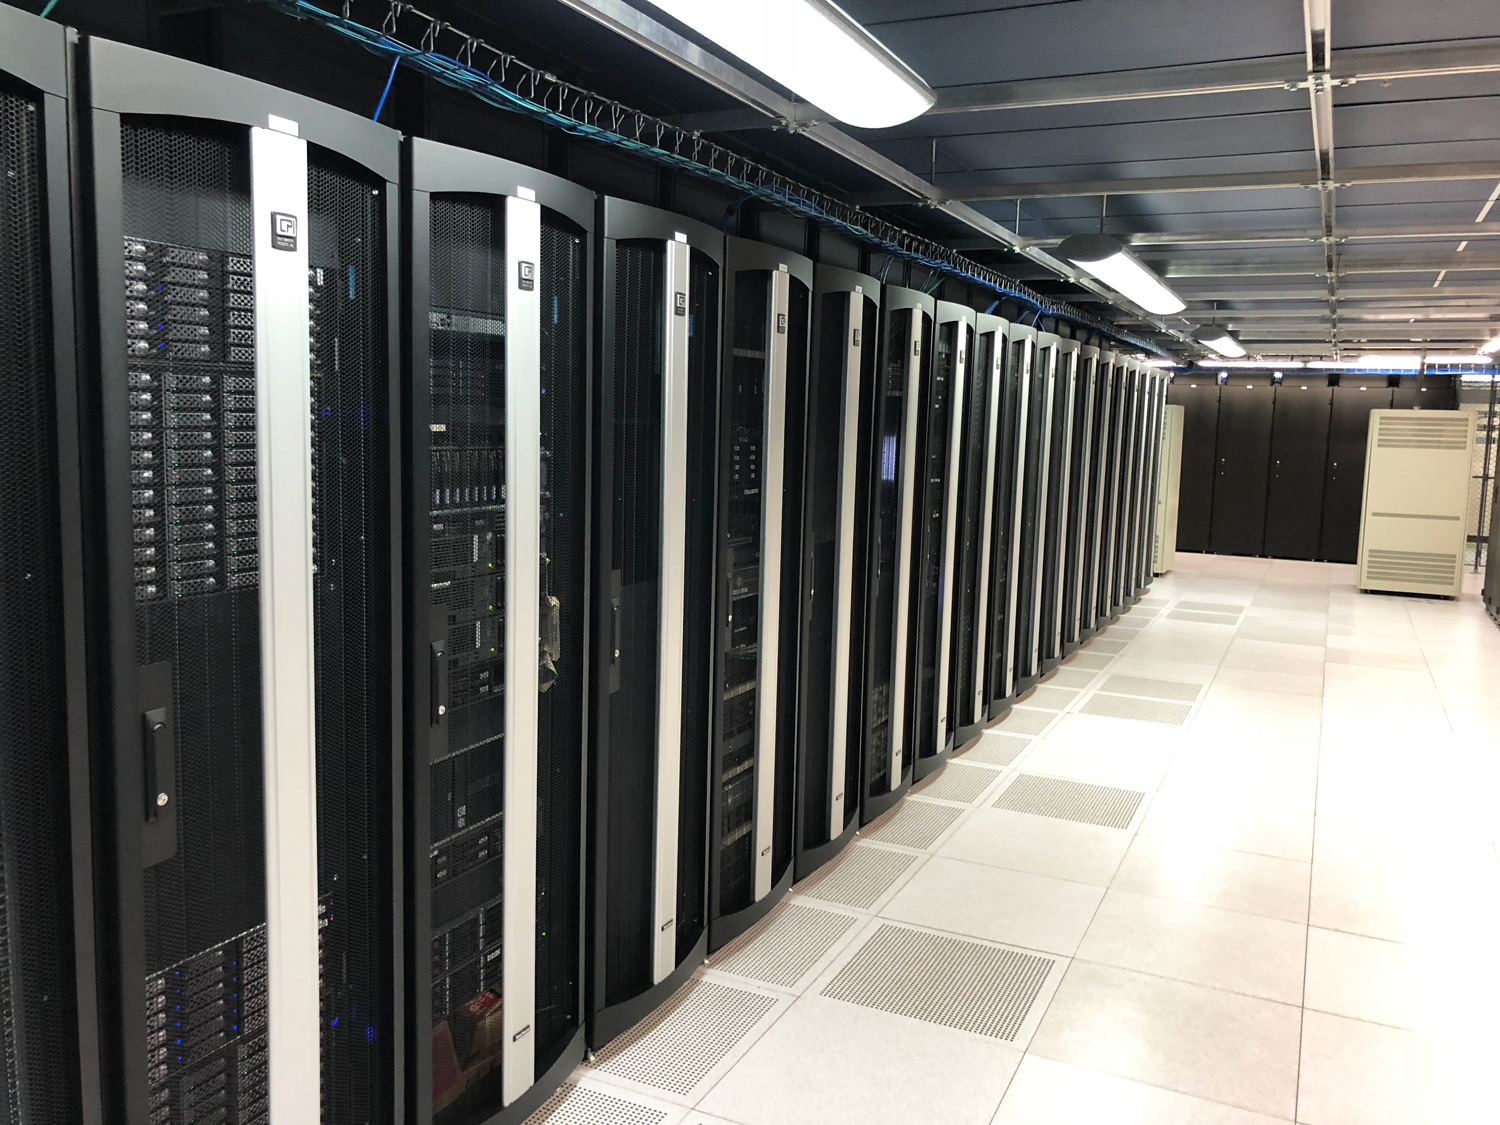 How a Colocation Doubled Rack Densities with Increased Operational Efficiencies: No Shortcuts Necessary